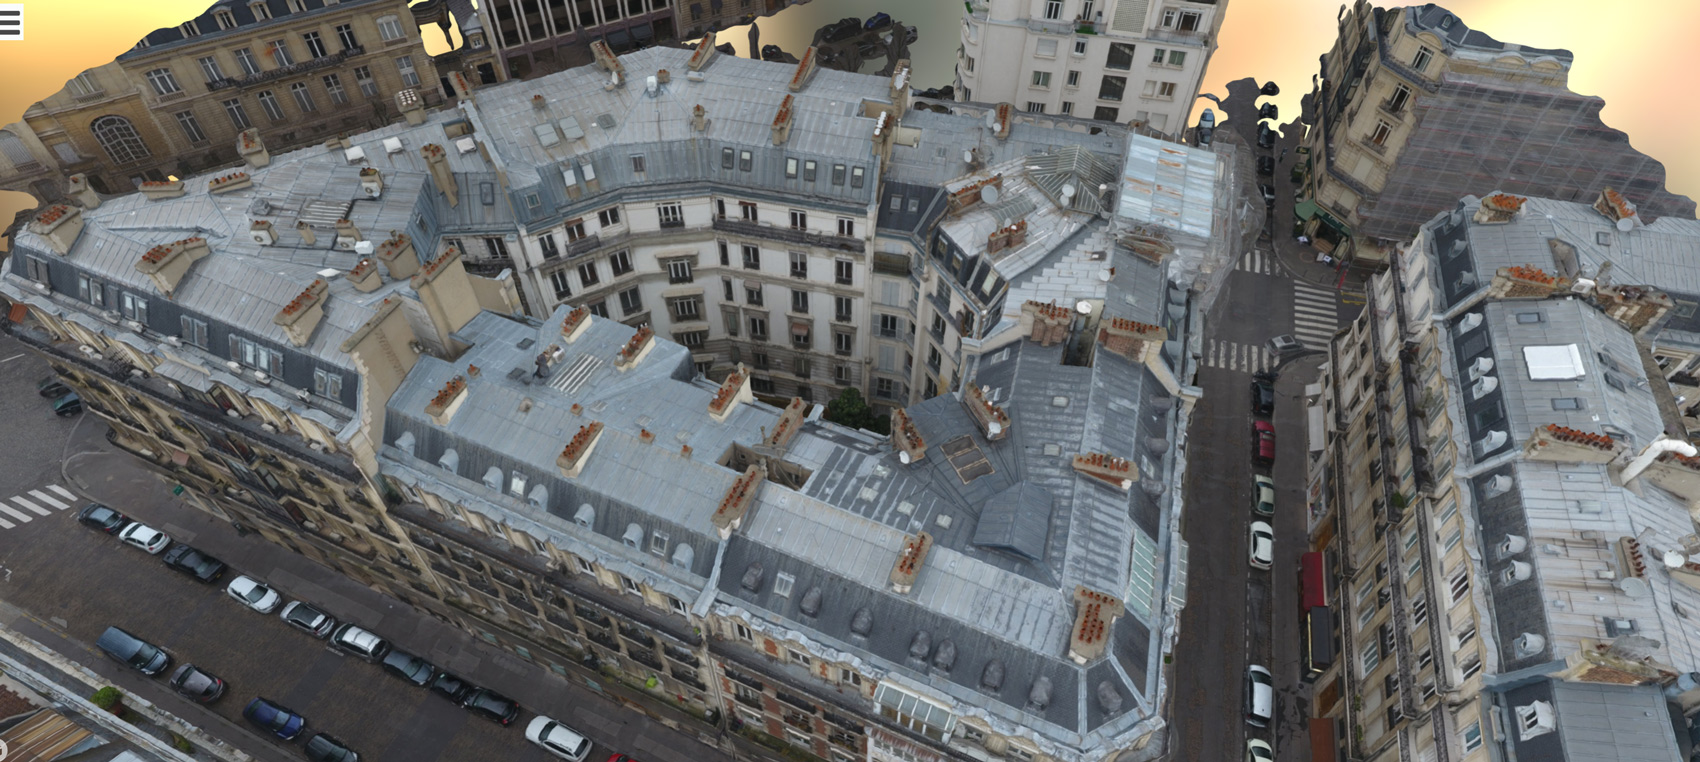 Roof survey of a Paris building